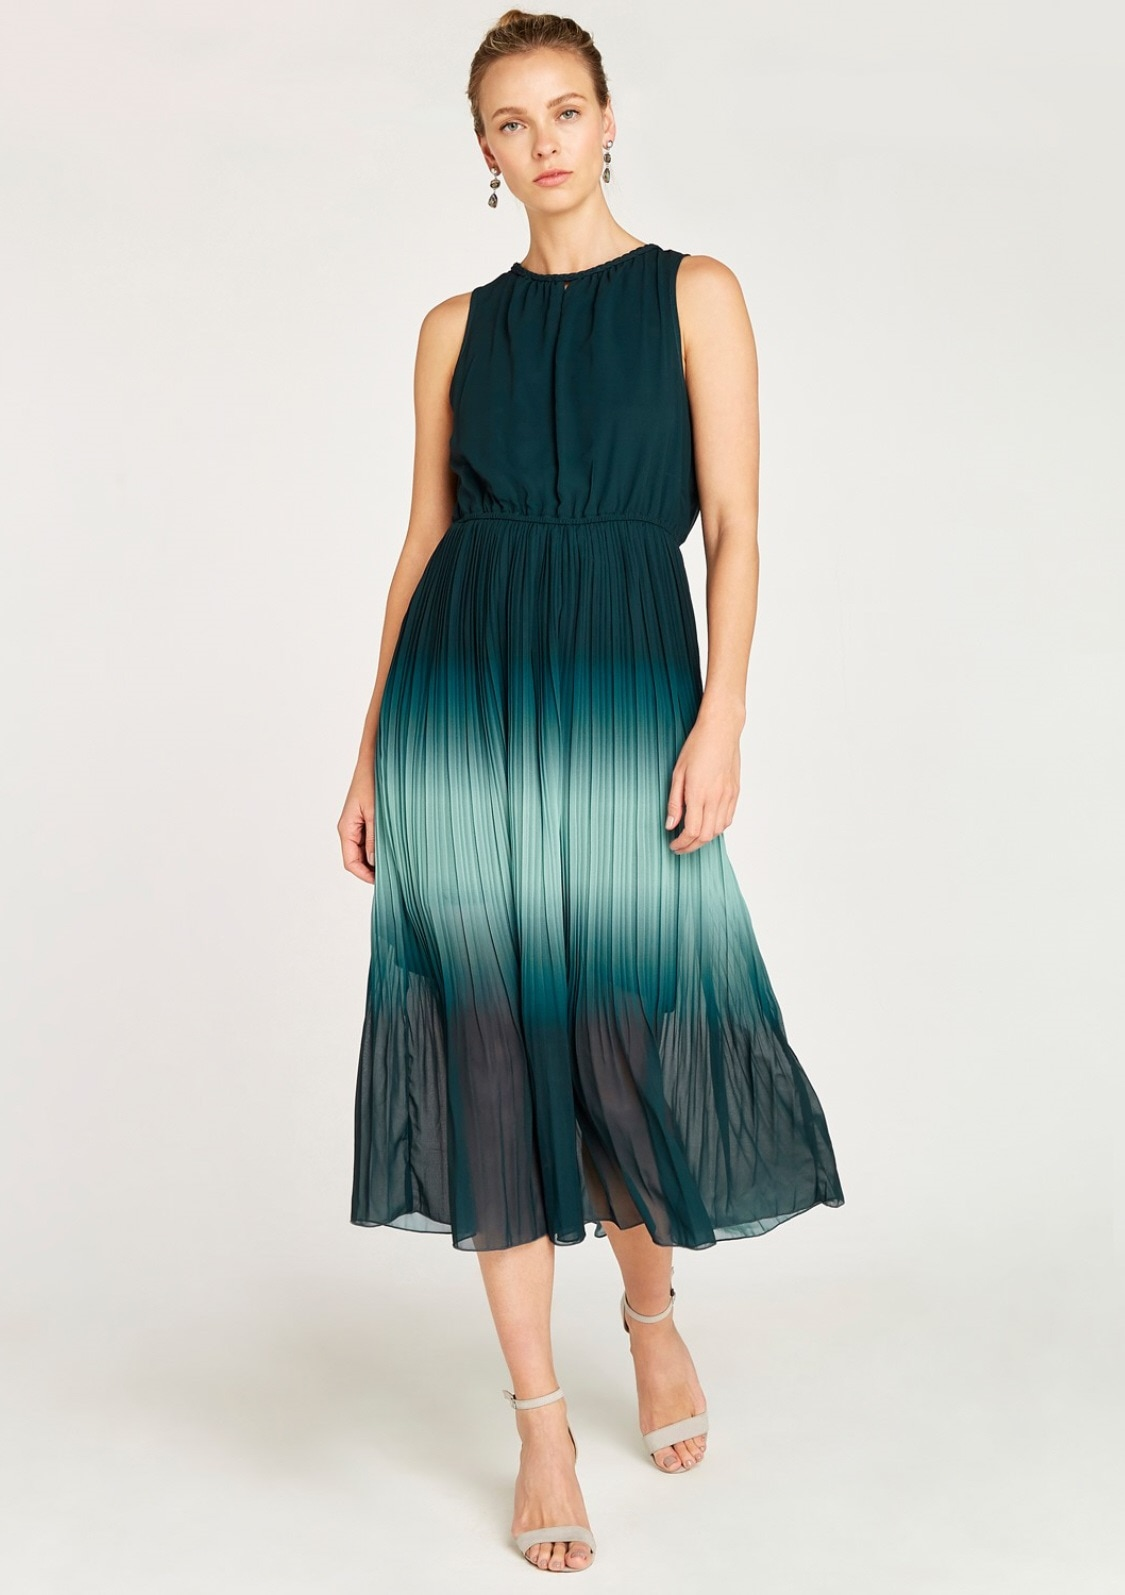 Image of Apricot Chiffonkleid »Ombre Grecian Neck Midi Dress«